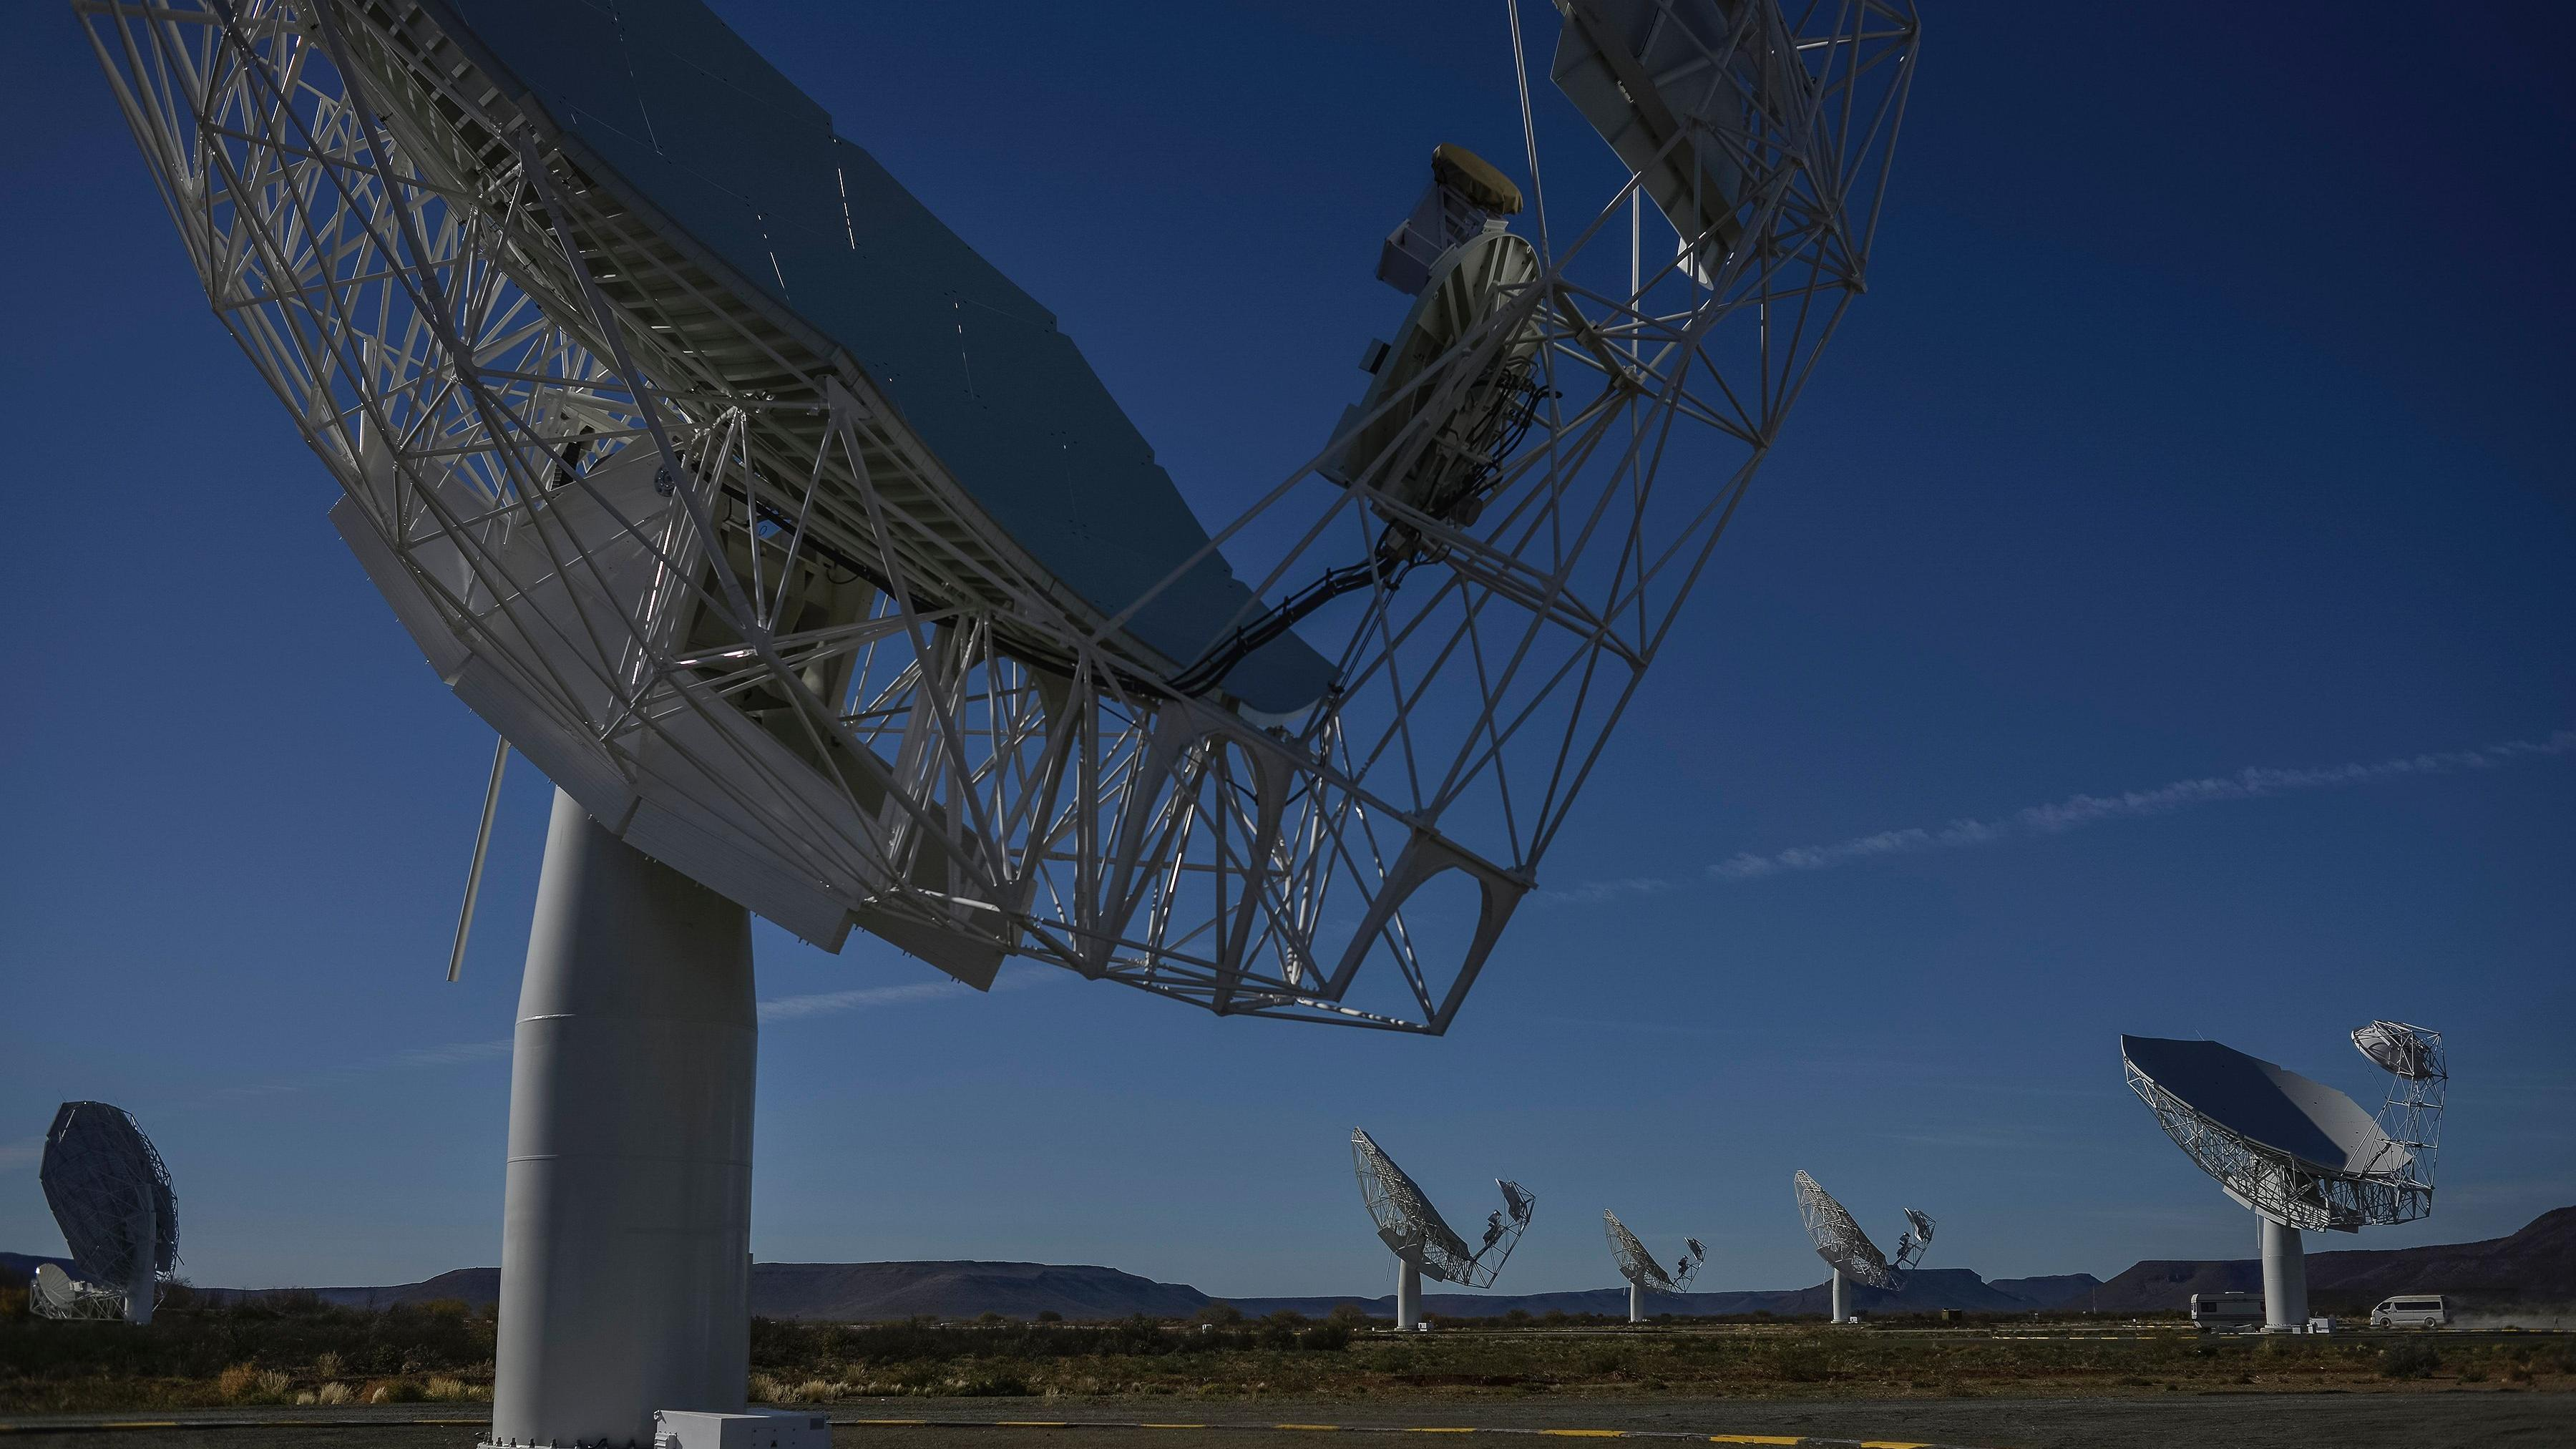 South African super-telescope reveals distant galaxies and black holes